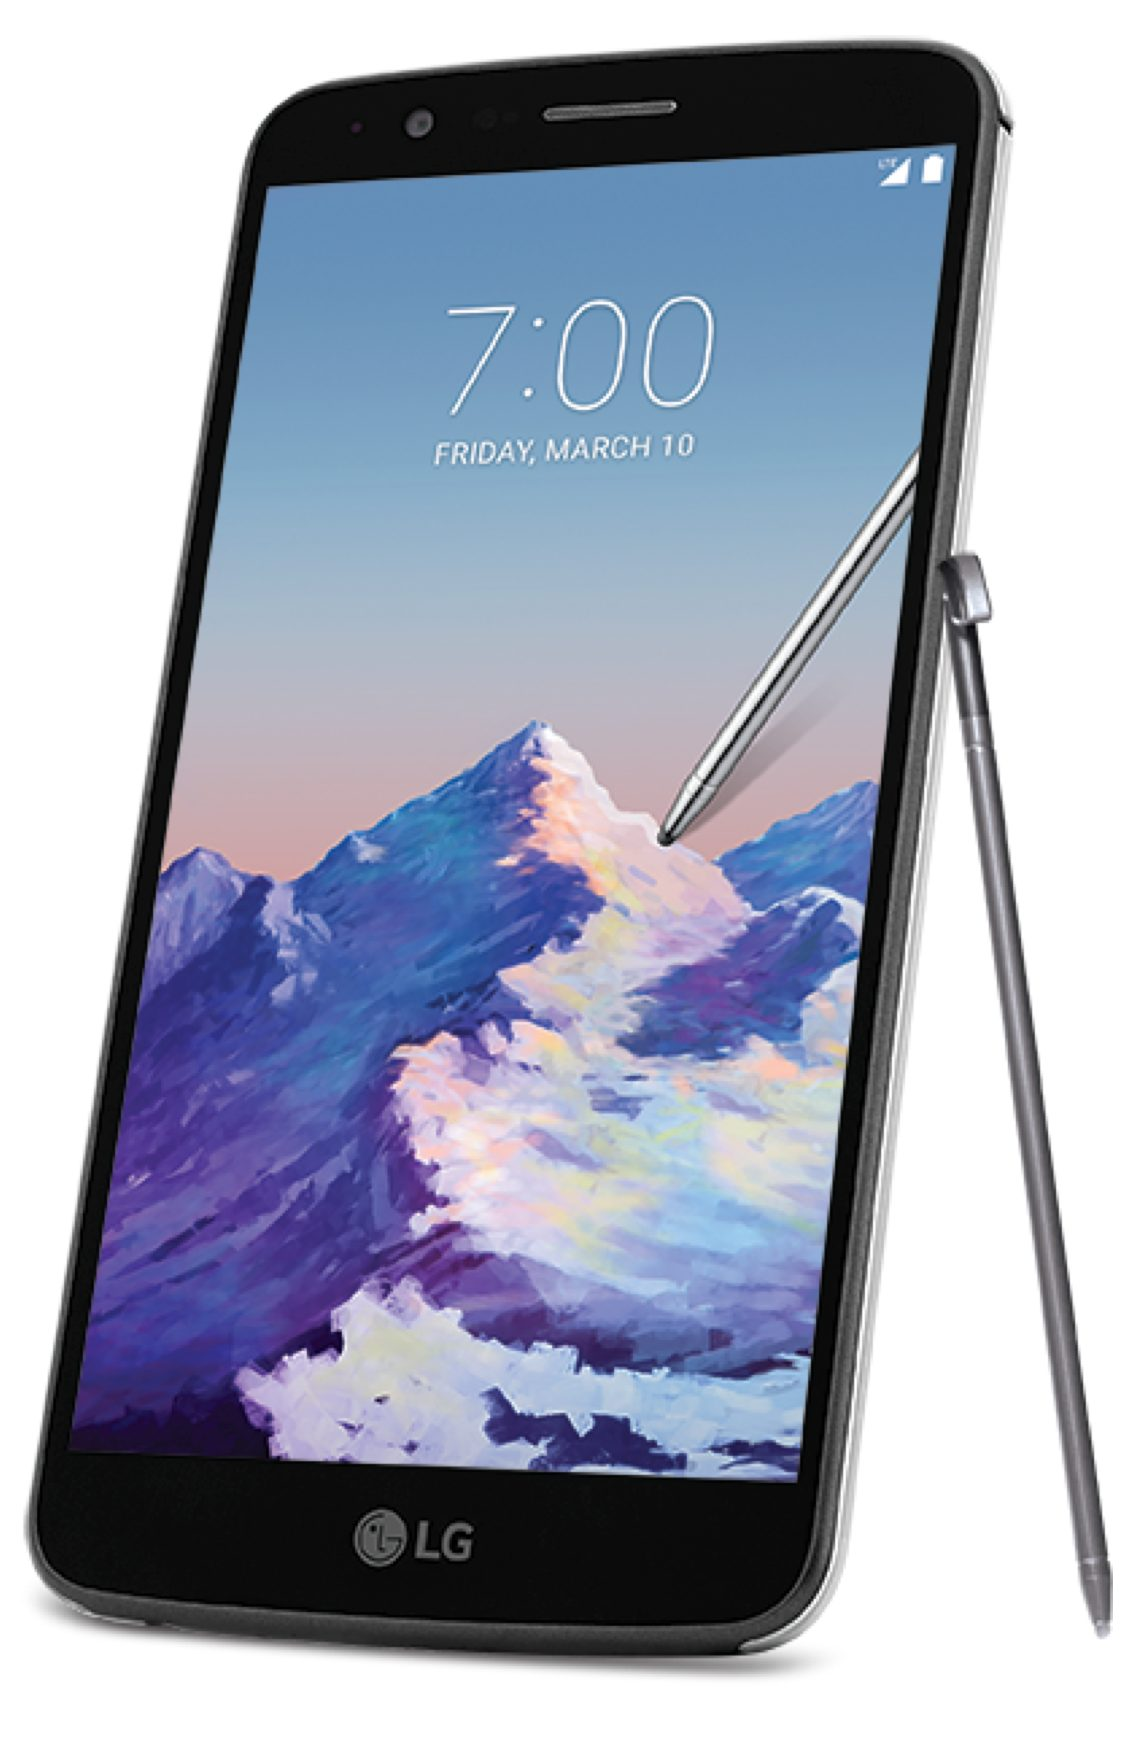 Lg Stylo 3 Features Specs And Reviews Boost Mobile Way Light Switching New Cable Colours Main Image